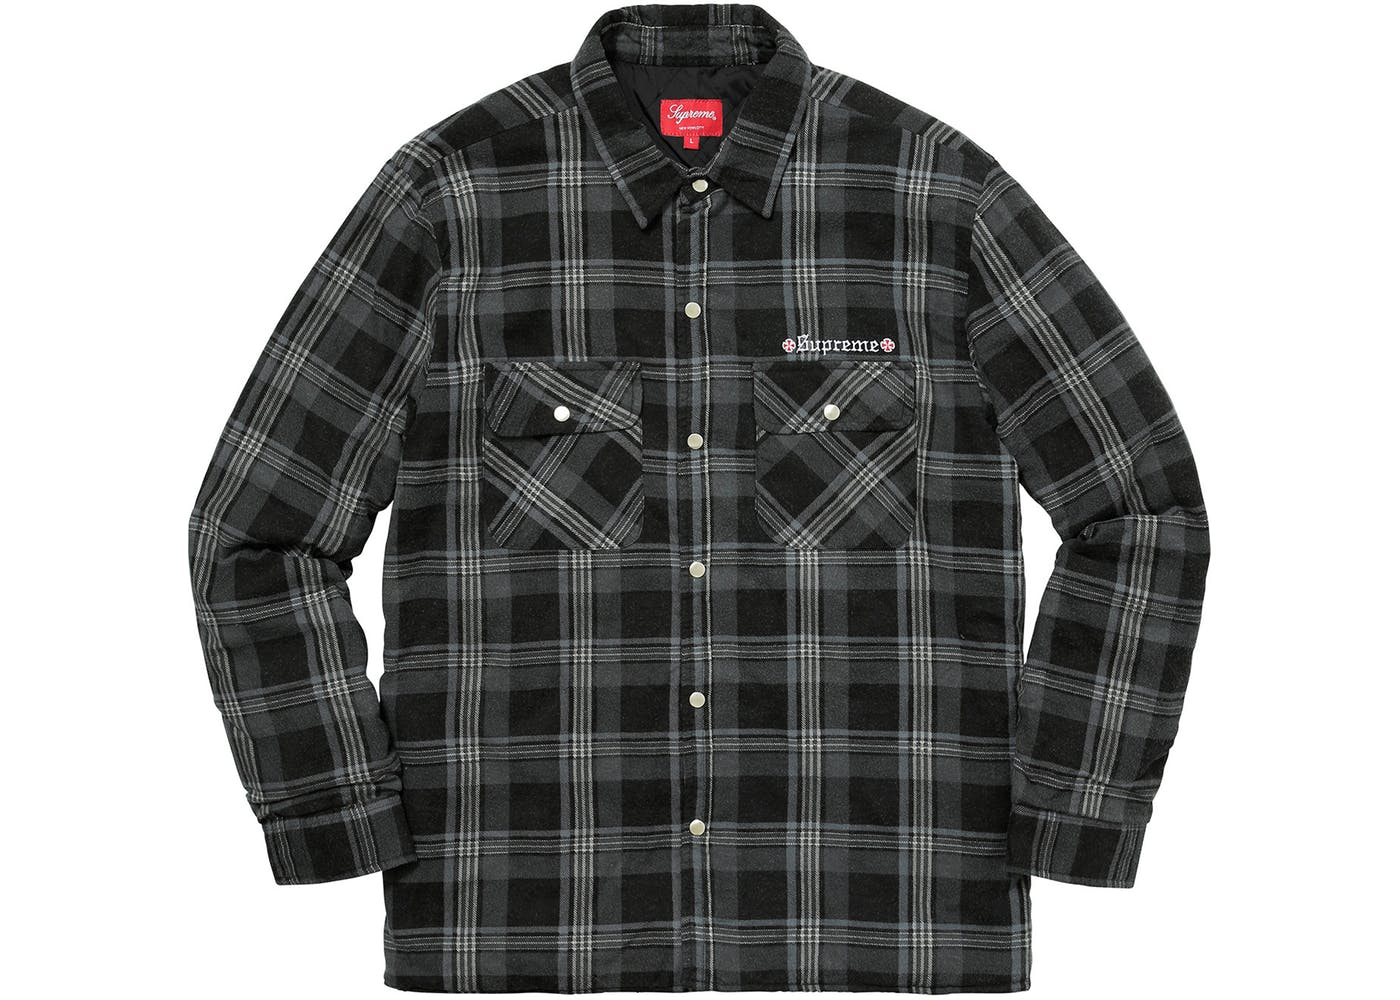 Supreme Independent Quilted Flannel Shirt Black : quilted flannel shirts - Adamdwight.com